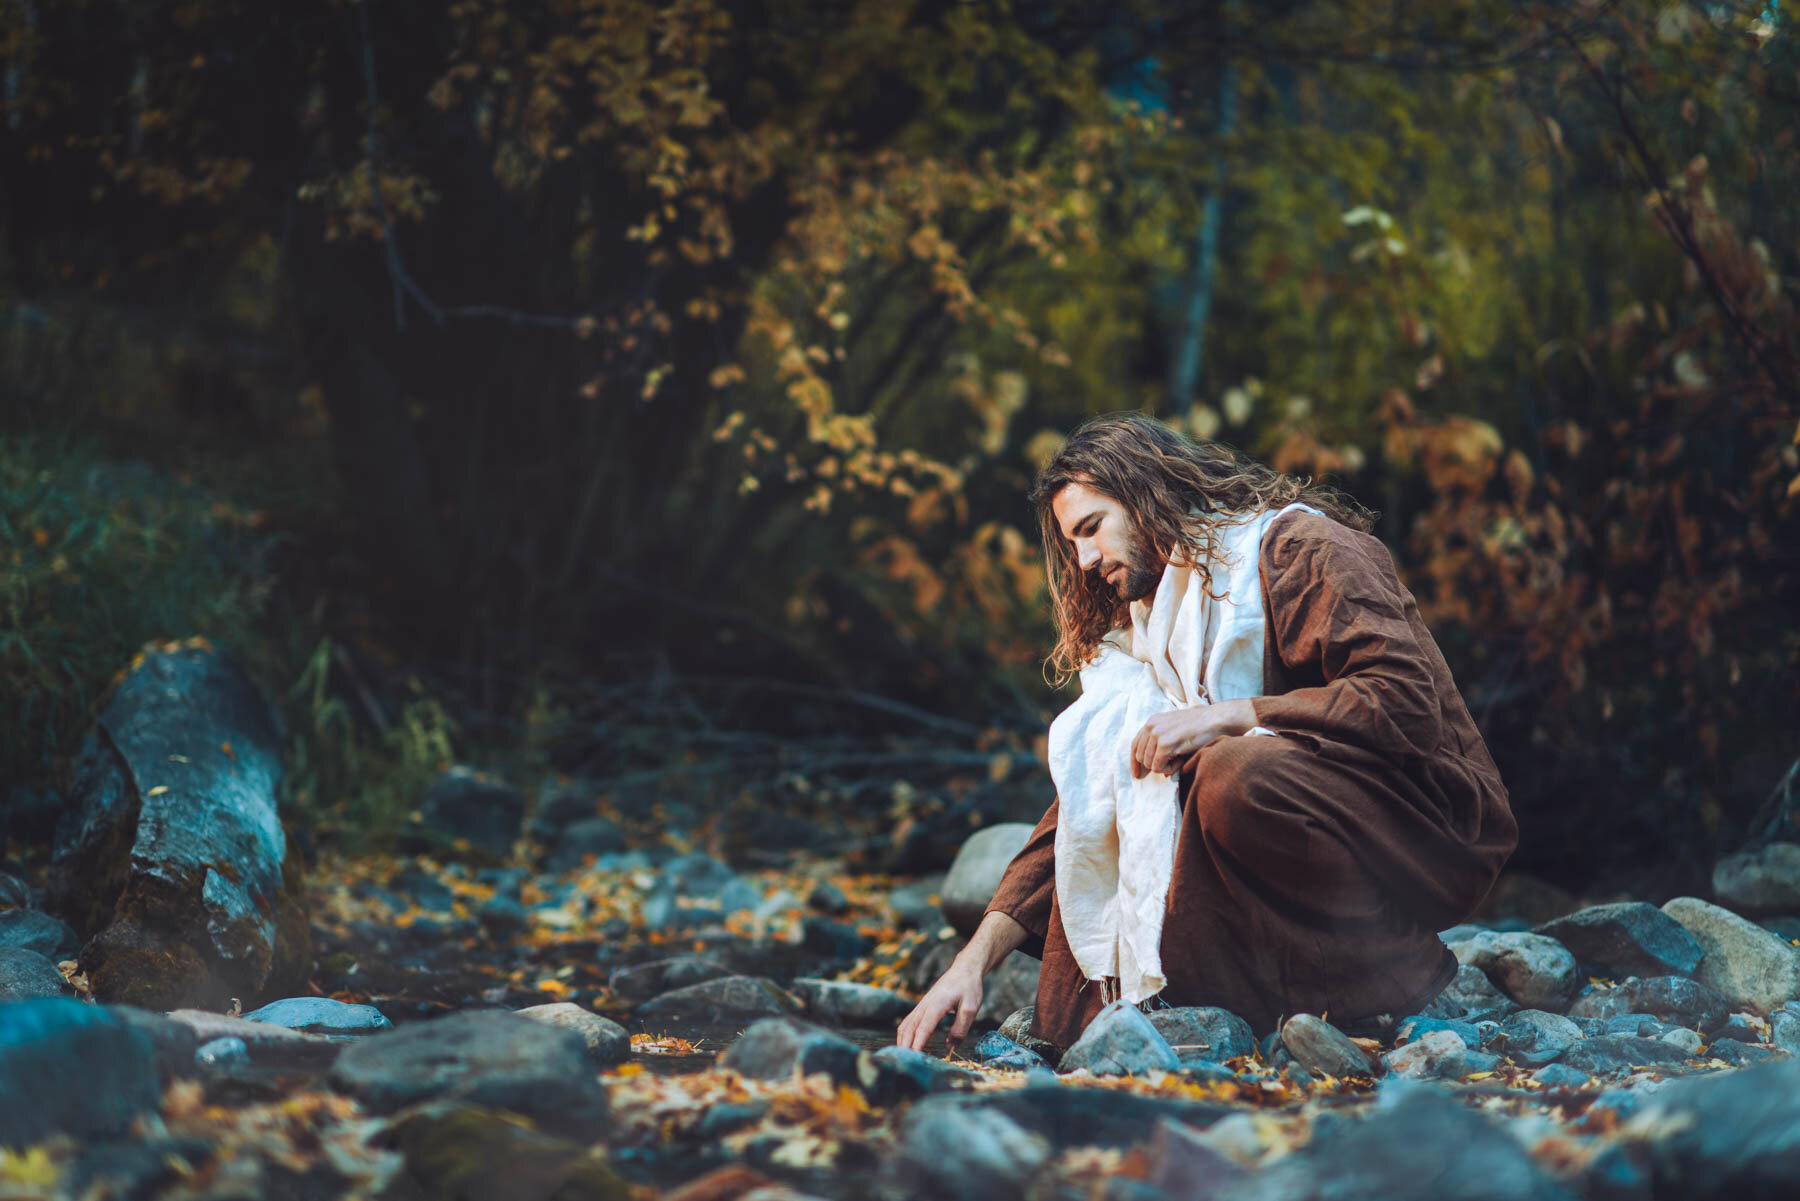 HD Images of Jesus Christ from Movies